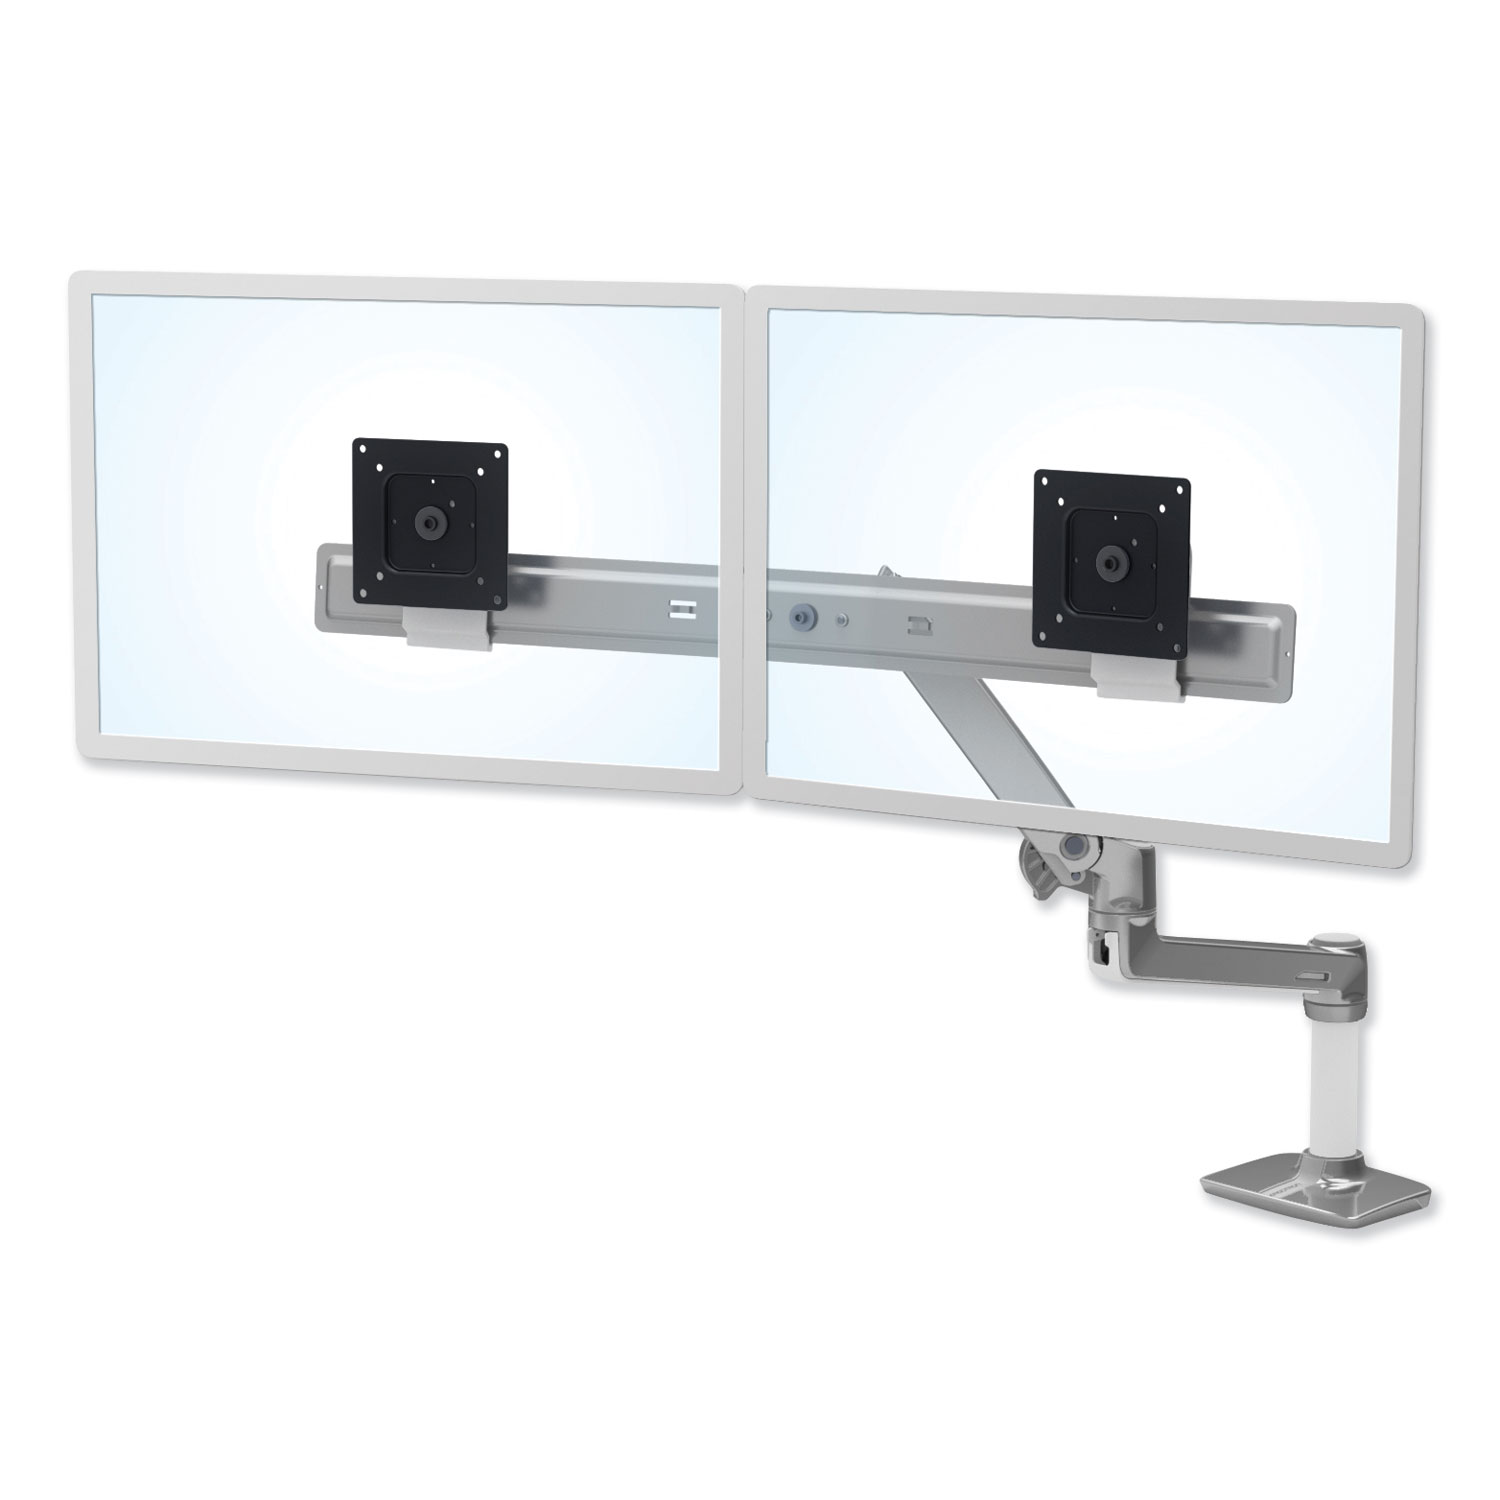 """Ergotron LX Dual Direct Monitor Arm for Monitors up to 25"""", 33.5w x 33.5d x 21h, Polished Aluminum"""